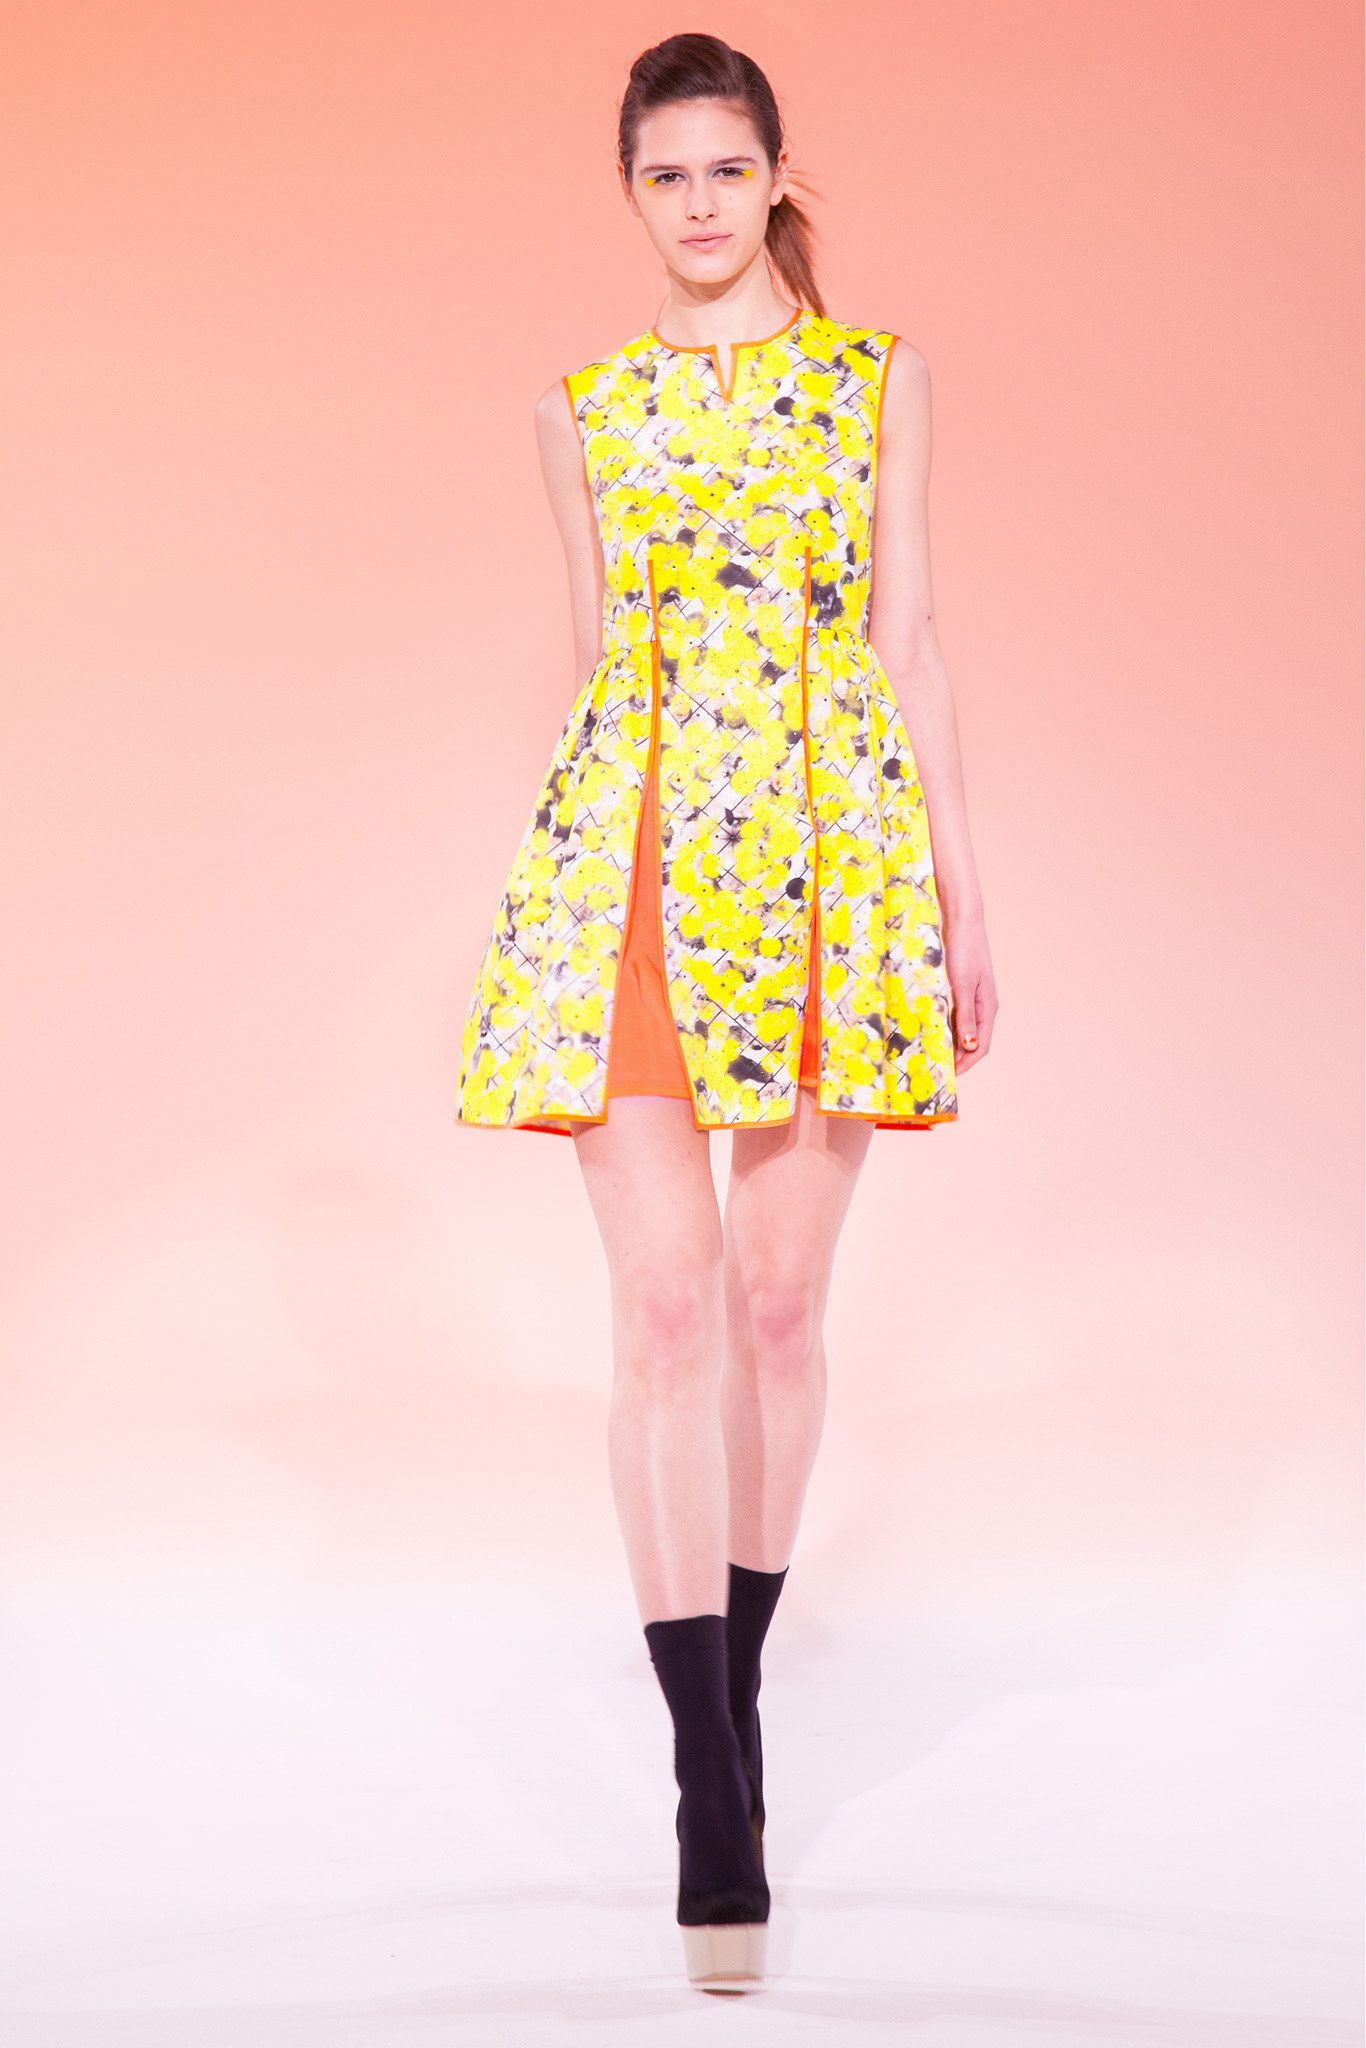 Fall 2013 Style Inspiration: What to Wear to a Sweet Sixteen Party (as an Adult) new photo